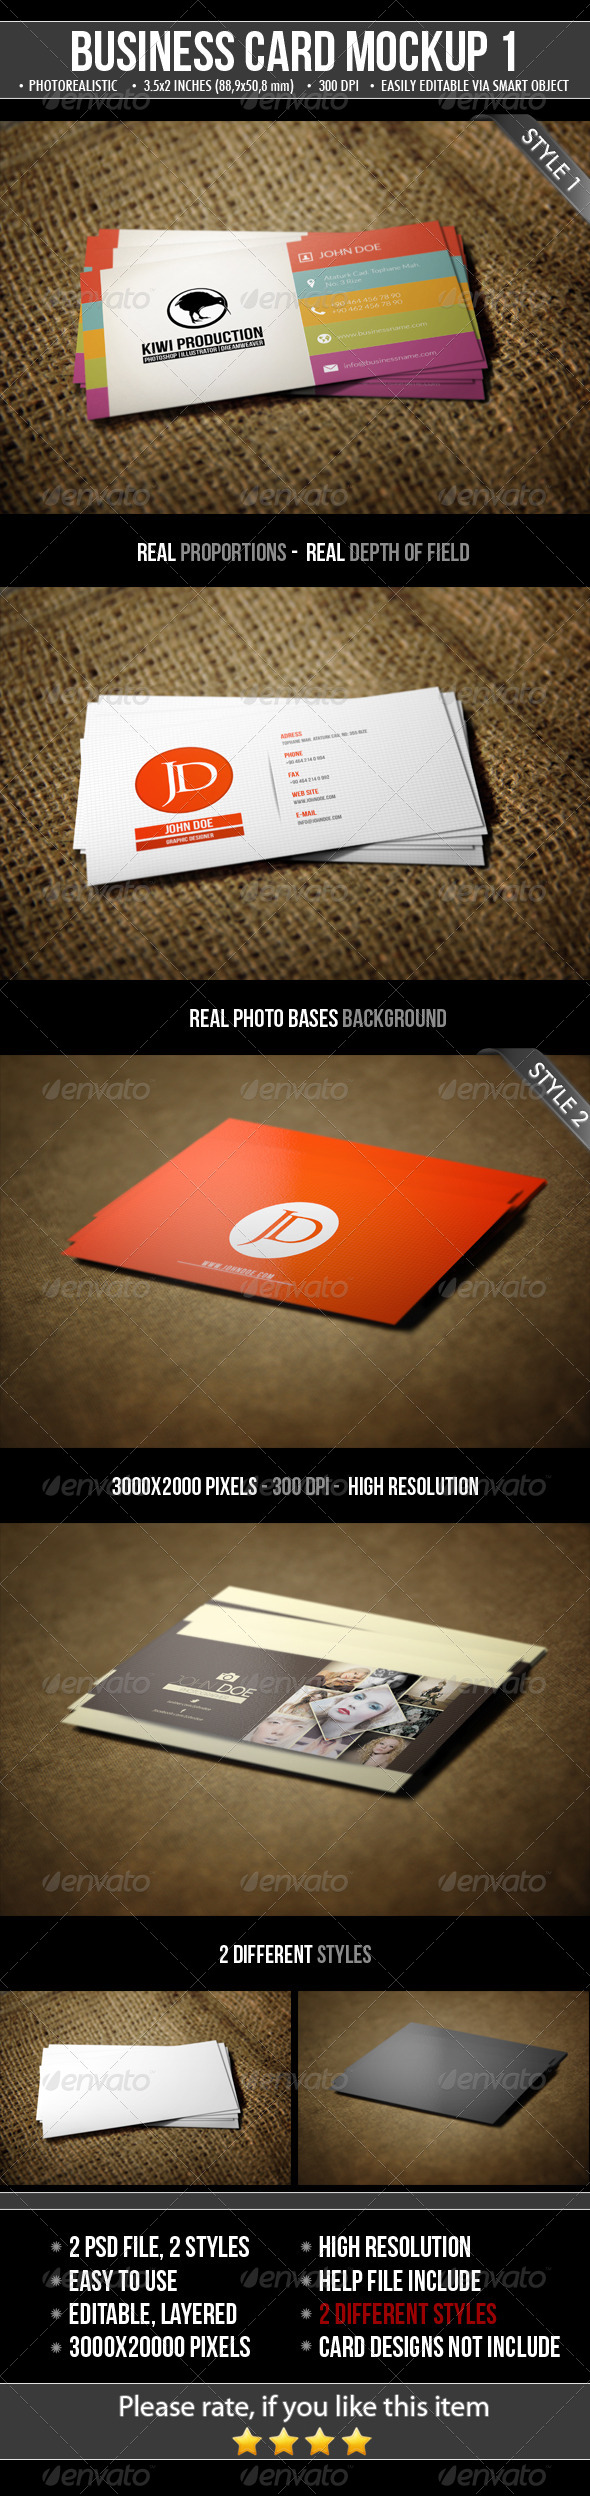 2 Realistic Business Card Mock-Ups - Business Cards Print